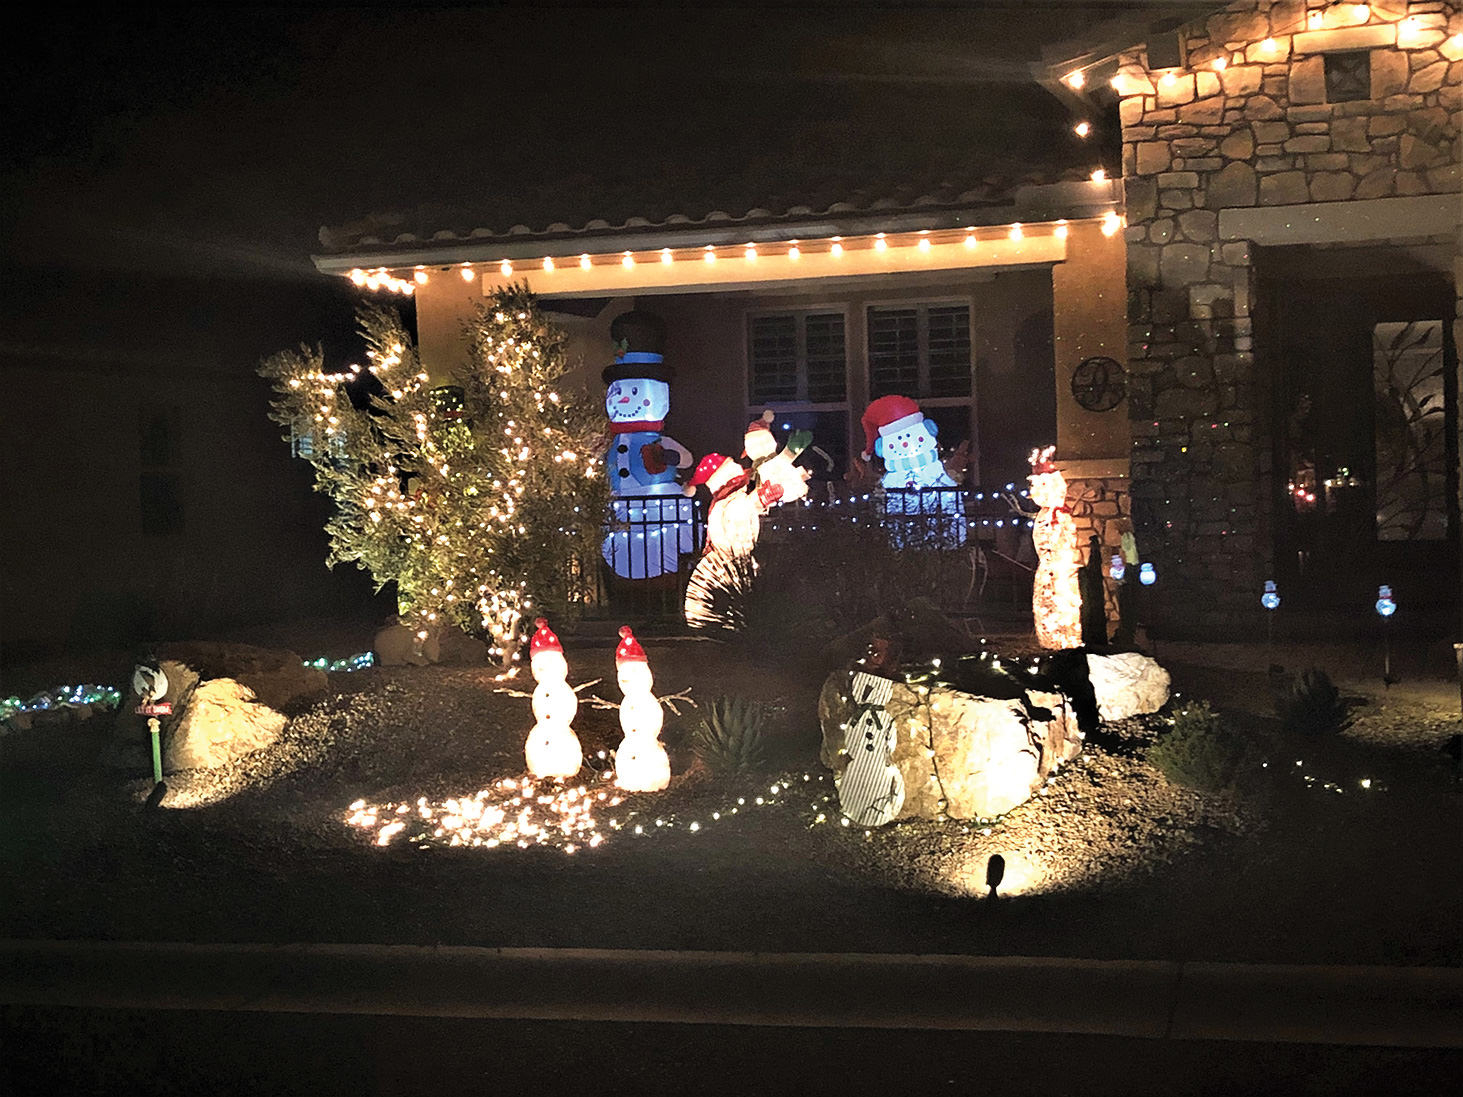 Miscellaneous holiday decorations at SBR (Photos by Leslie Brown)